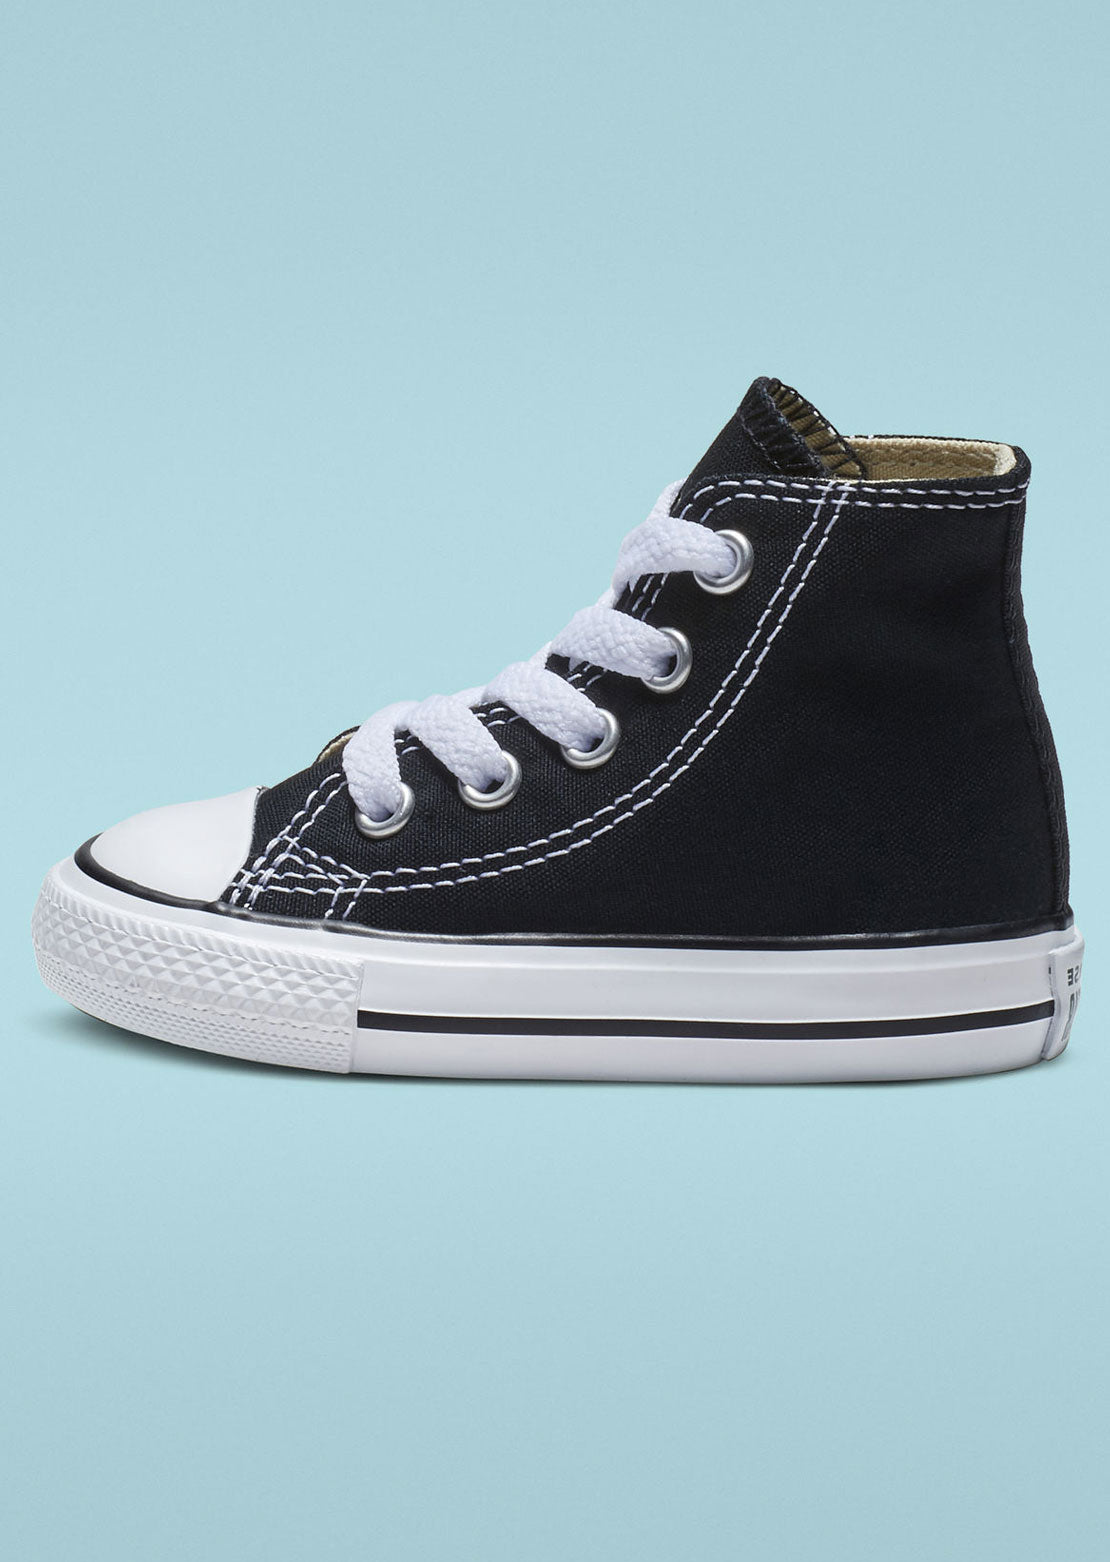 Converse Toddler Chuck Taylor Hi Top Shoes Black